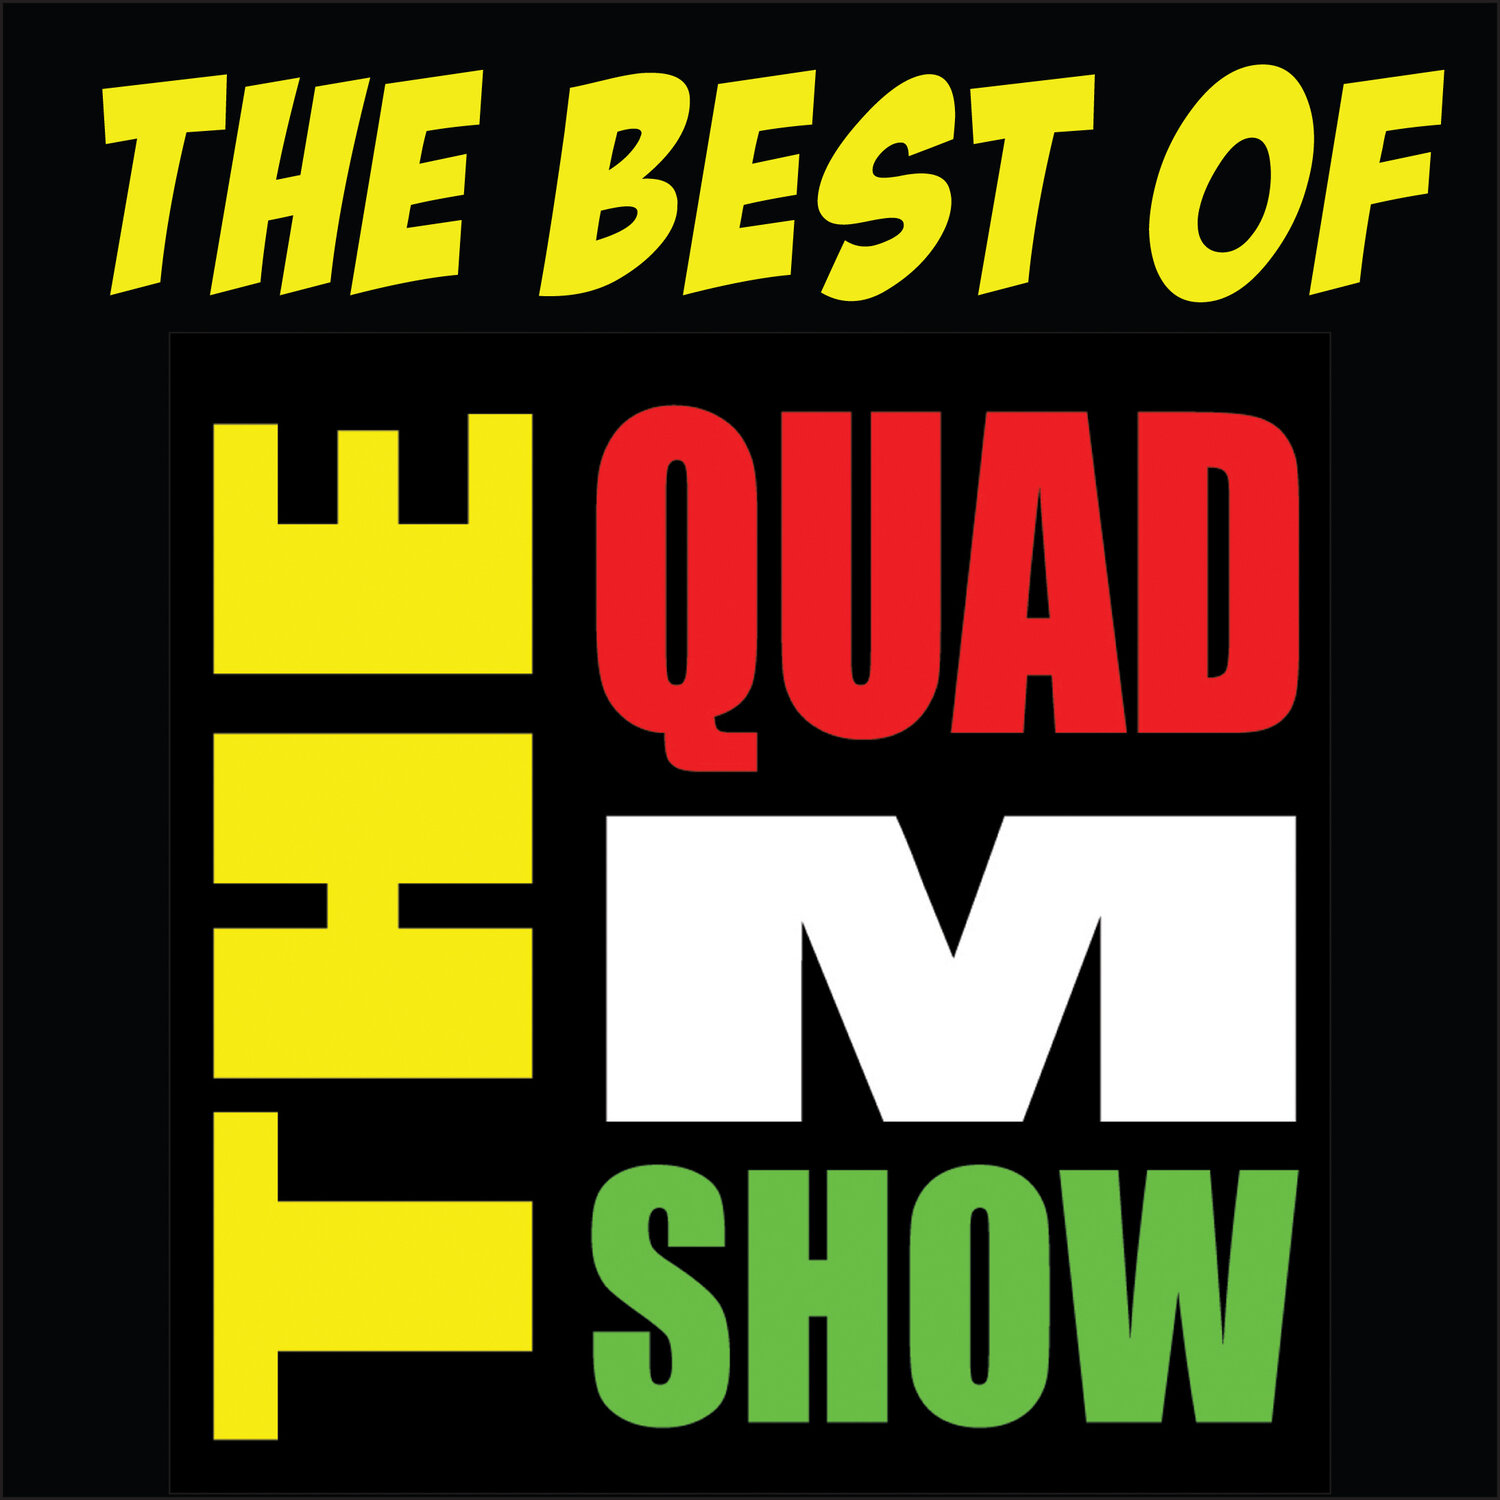 Best Of The Quad M Show